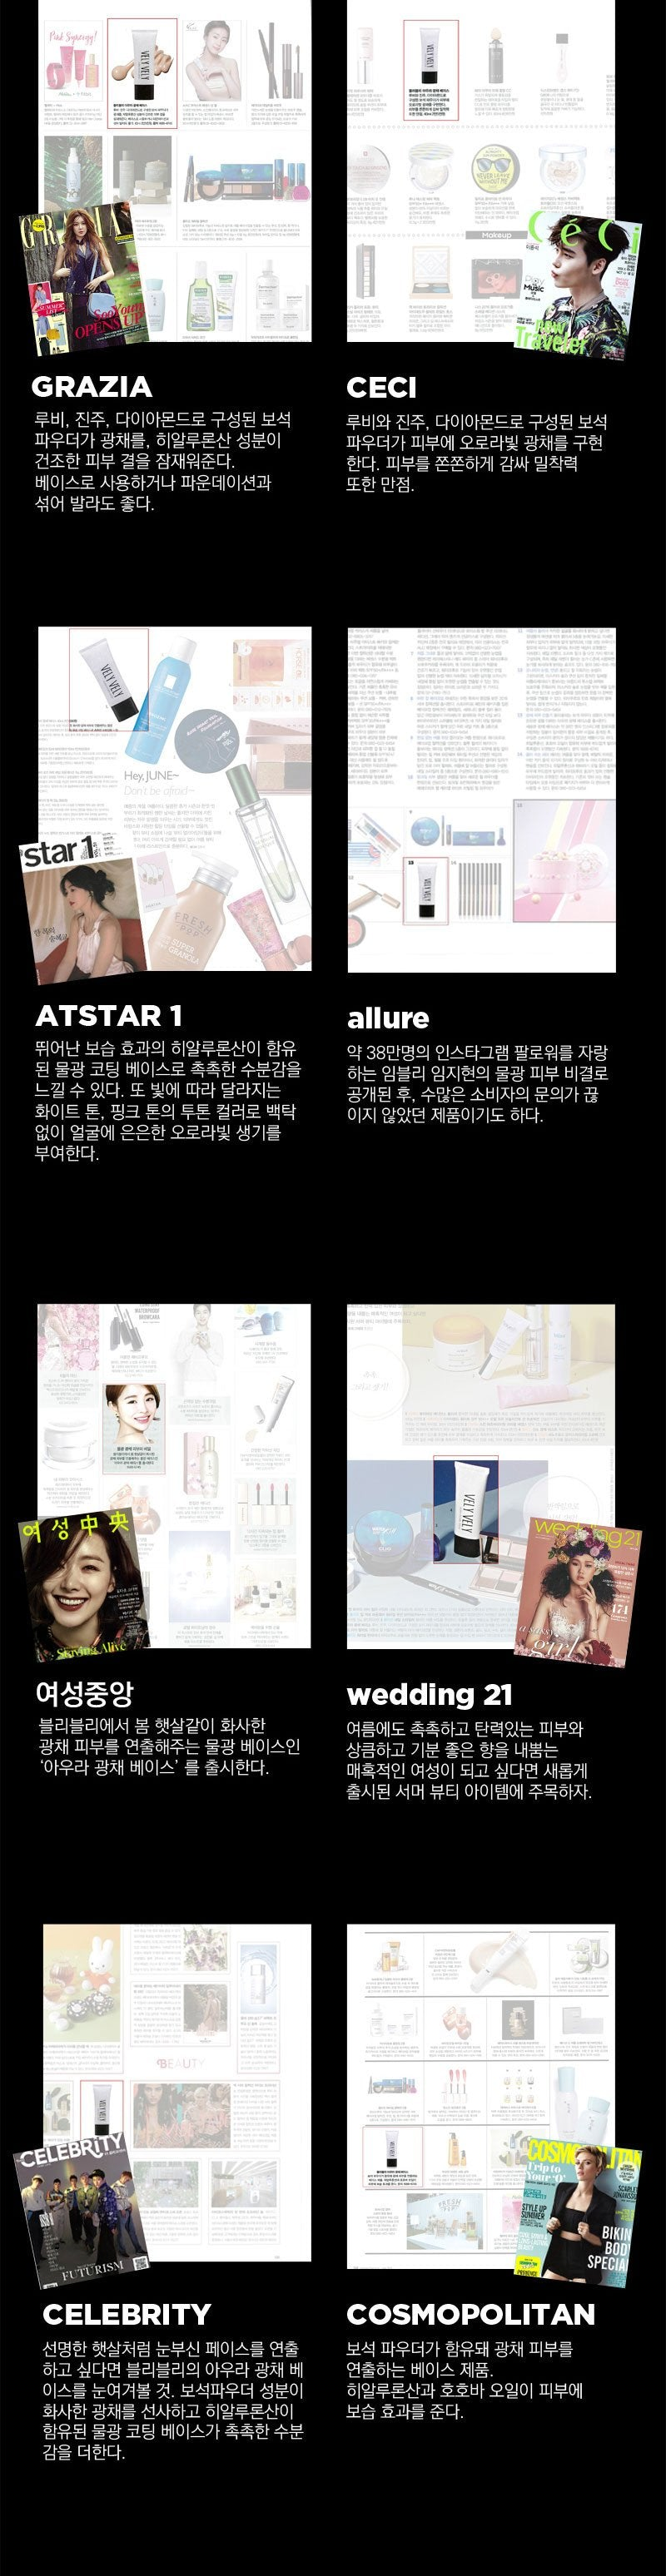 Vely Vely Aura Pearl Base featured on famous magazine in korea